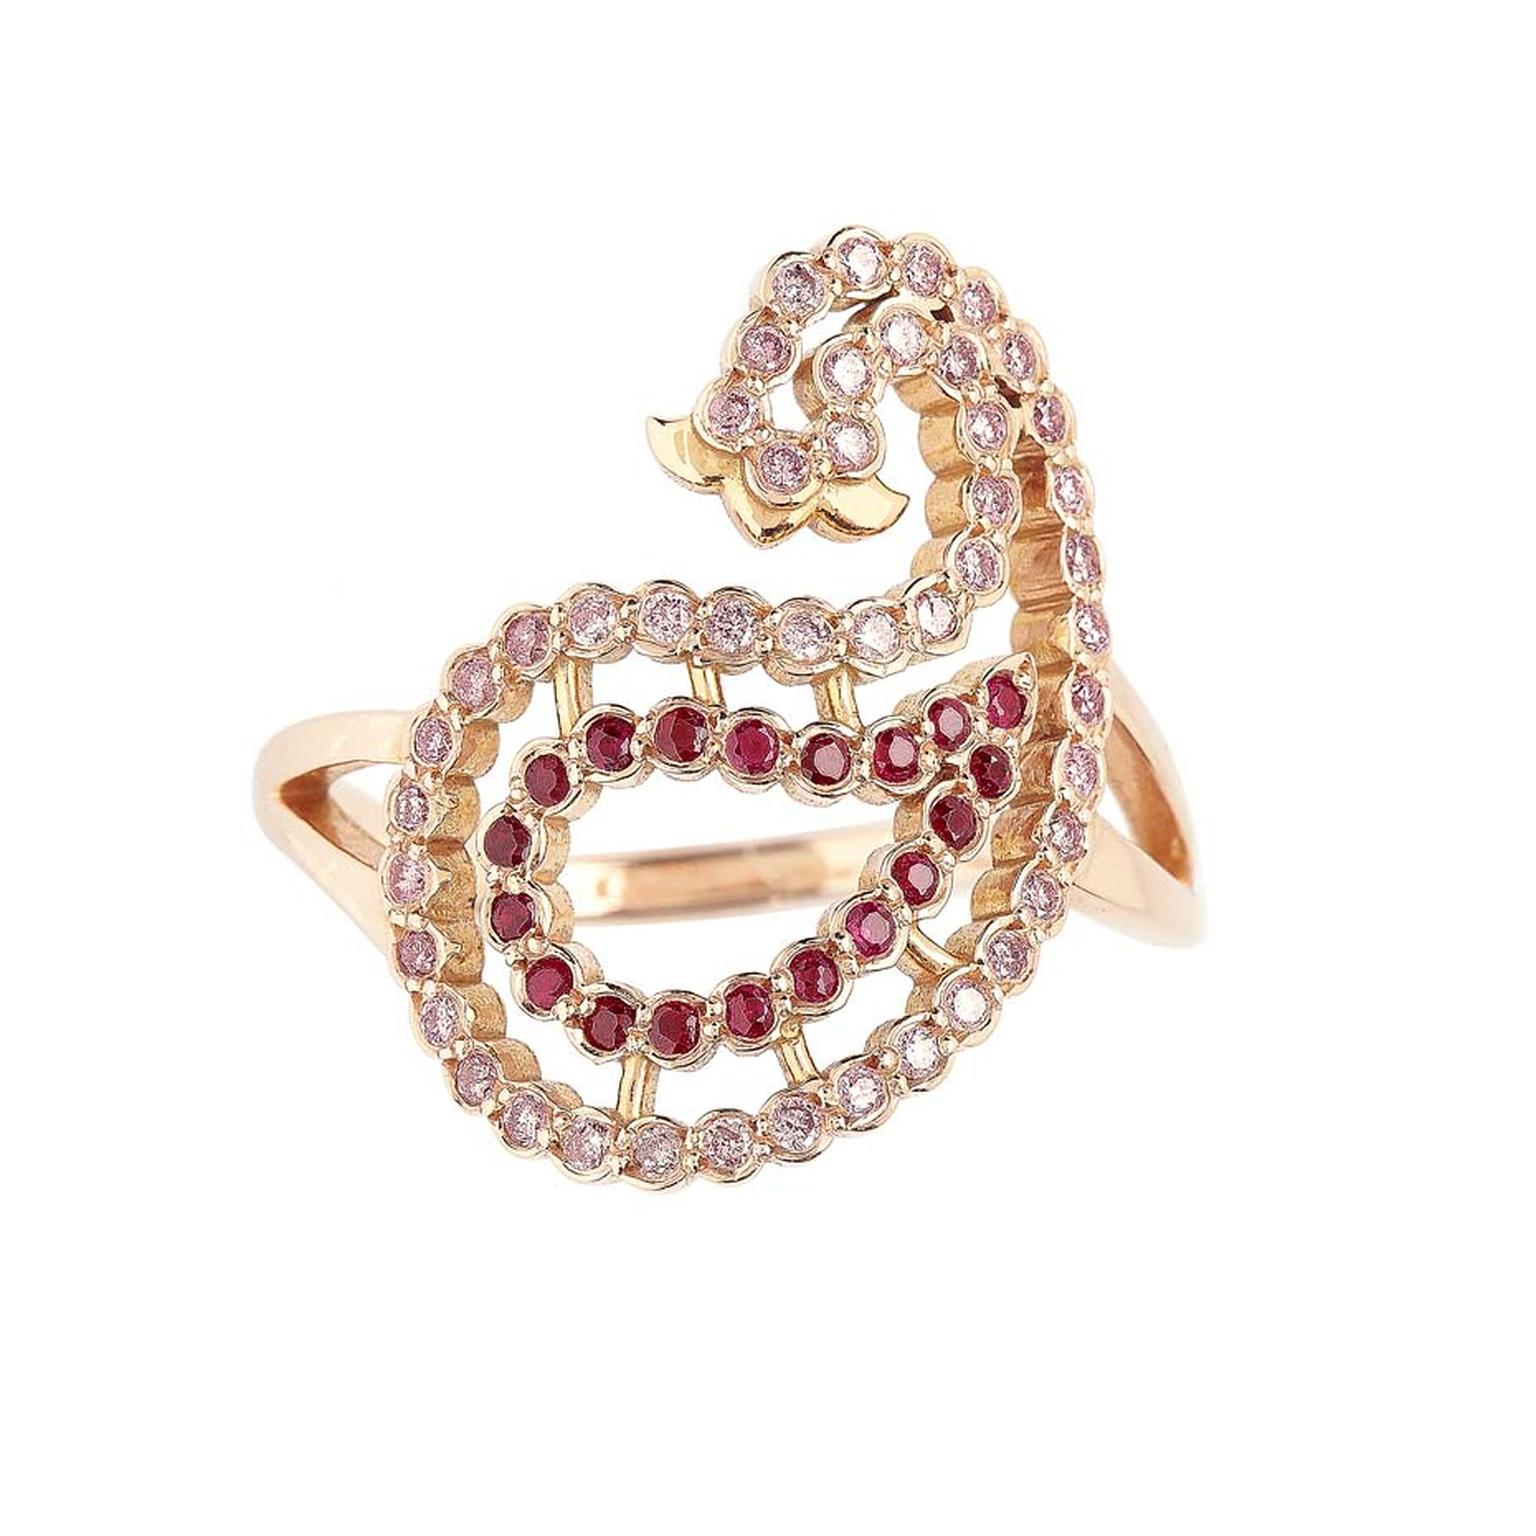 Azar pink gold ring set with pink diamonds and rubies by Greek designer Lito.